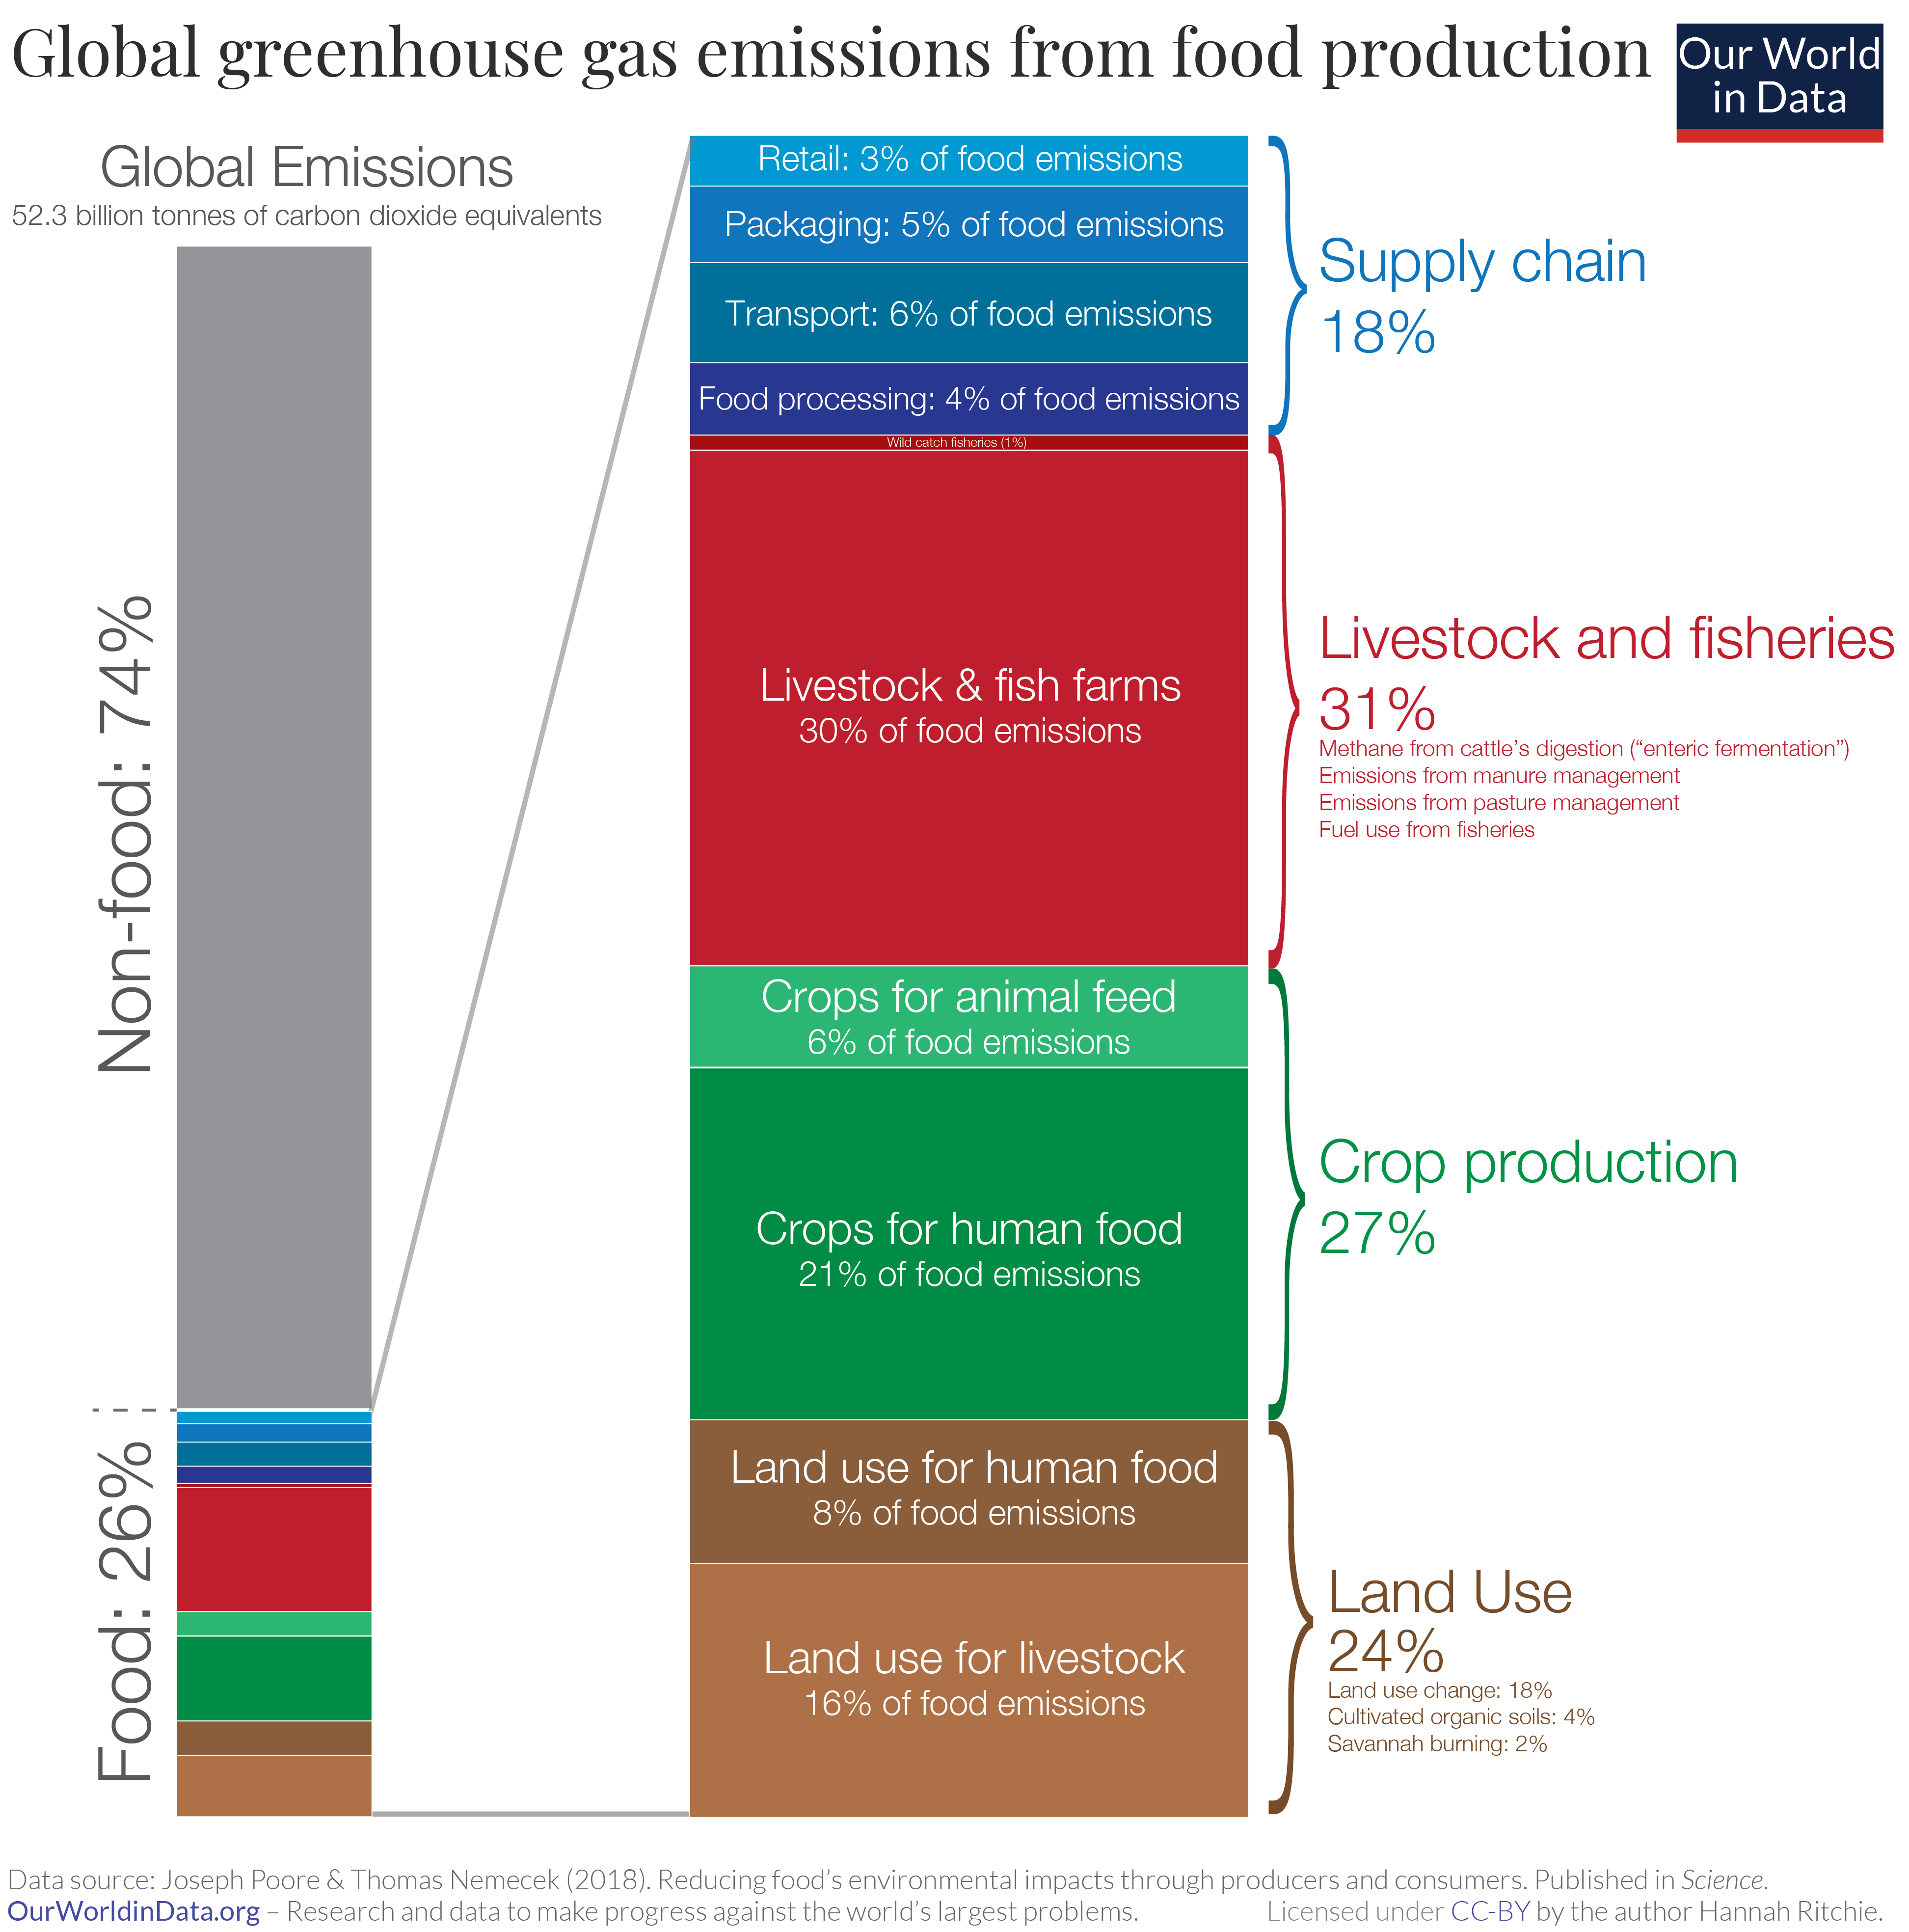 Global greenhouse gas emissions from food production